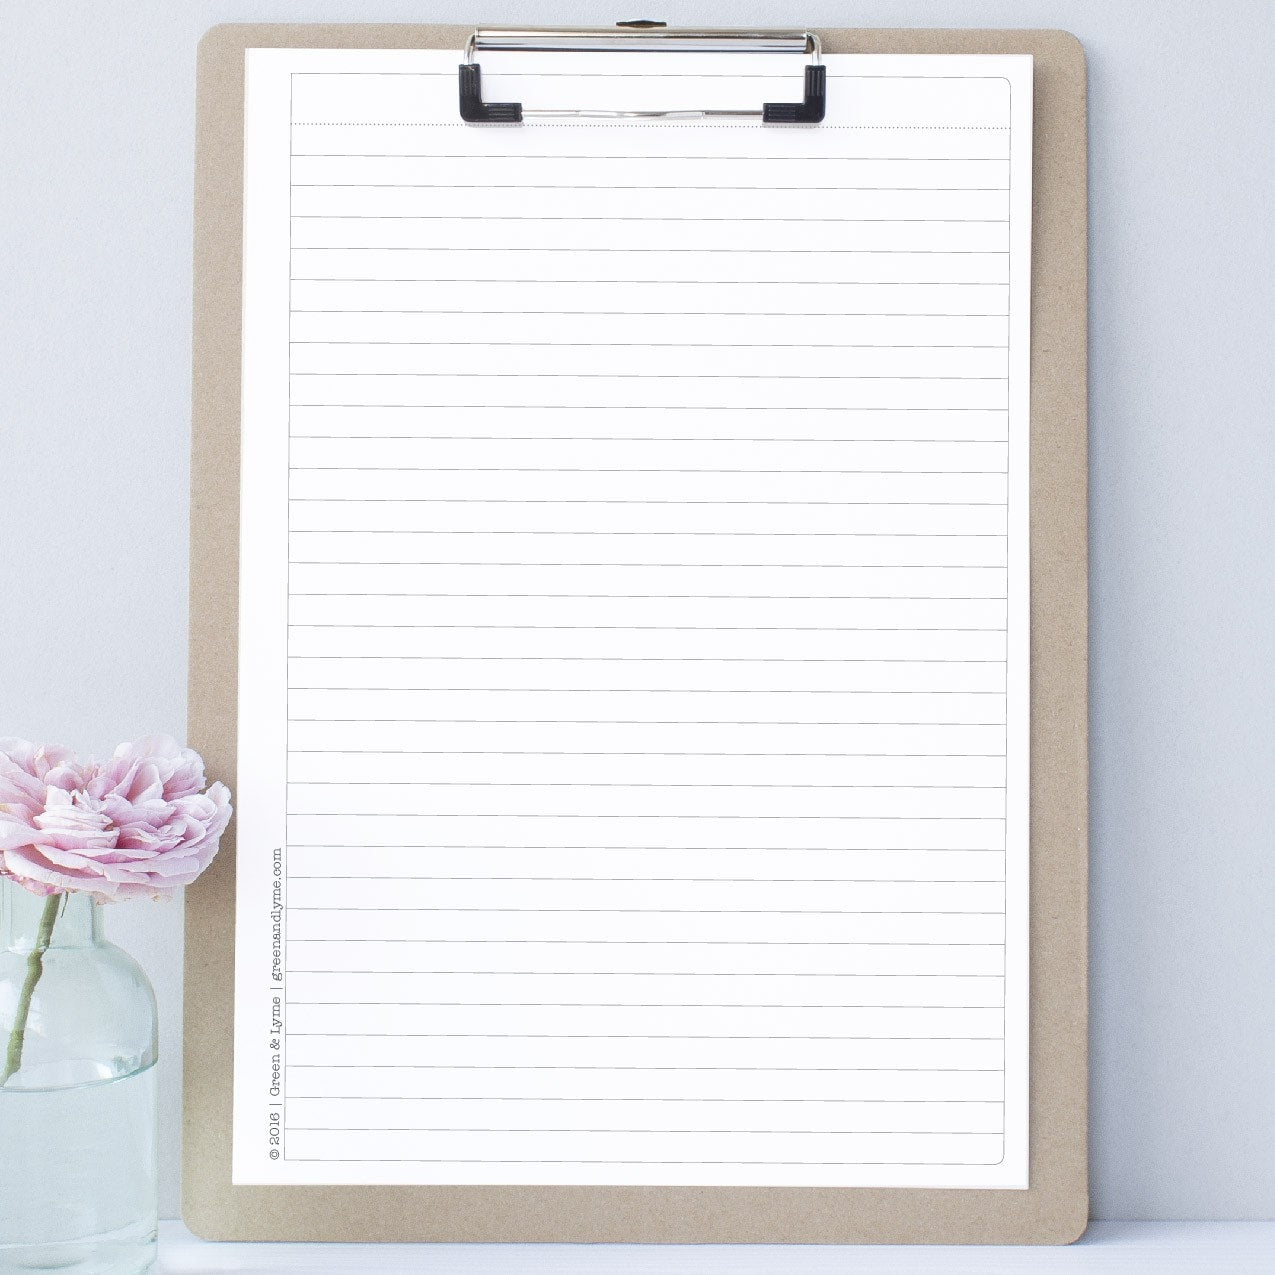 graphic relating to Free Printable Notes Page known as Printable Covered Notepaper - Inexperienced and Lyme